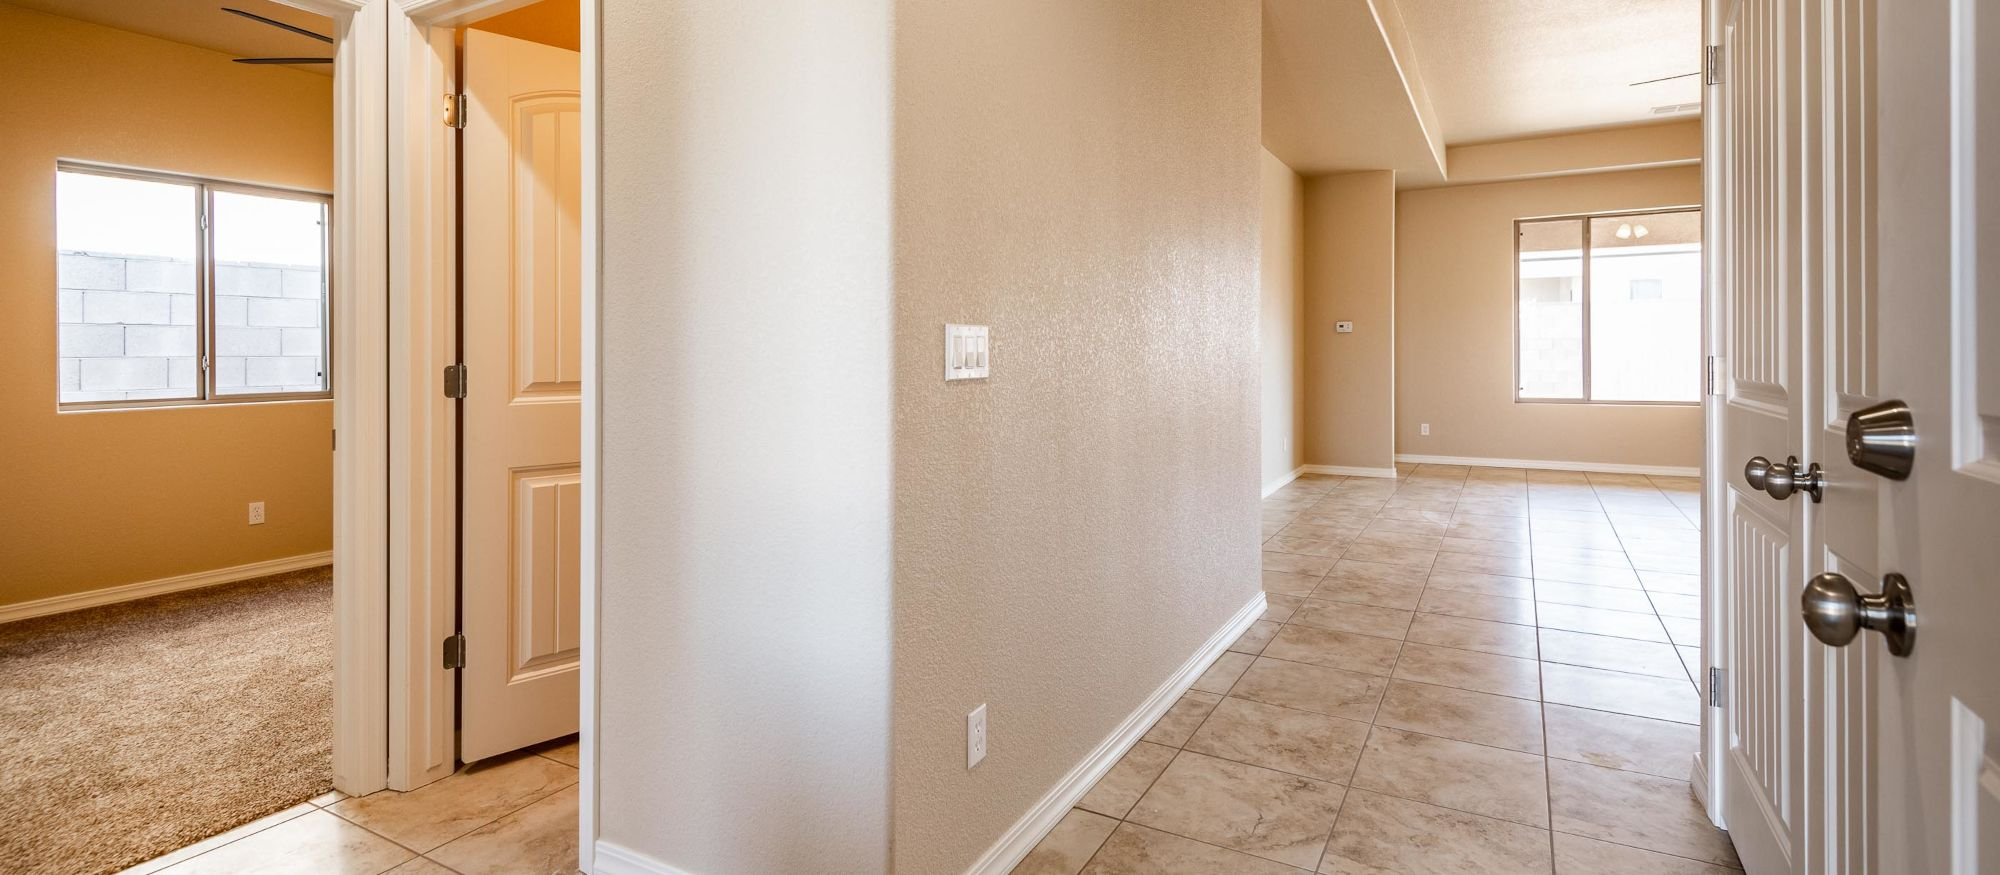 Living Area featured in the Ironwood 1593 3 Car By Angle Homes in Kingman-Lake Havasu City, AZ